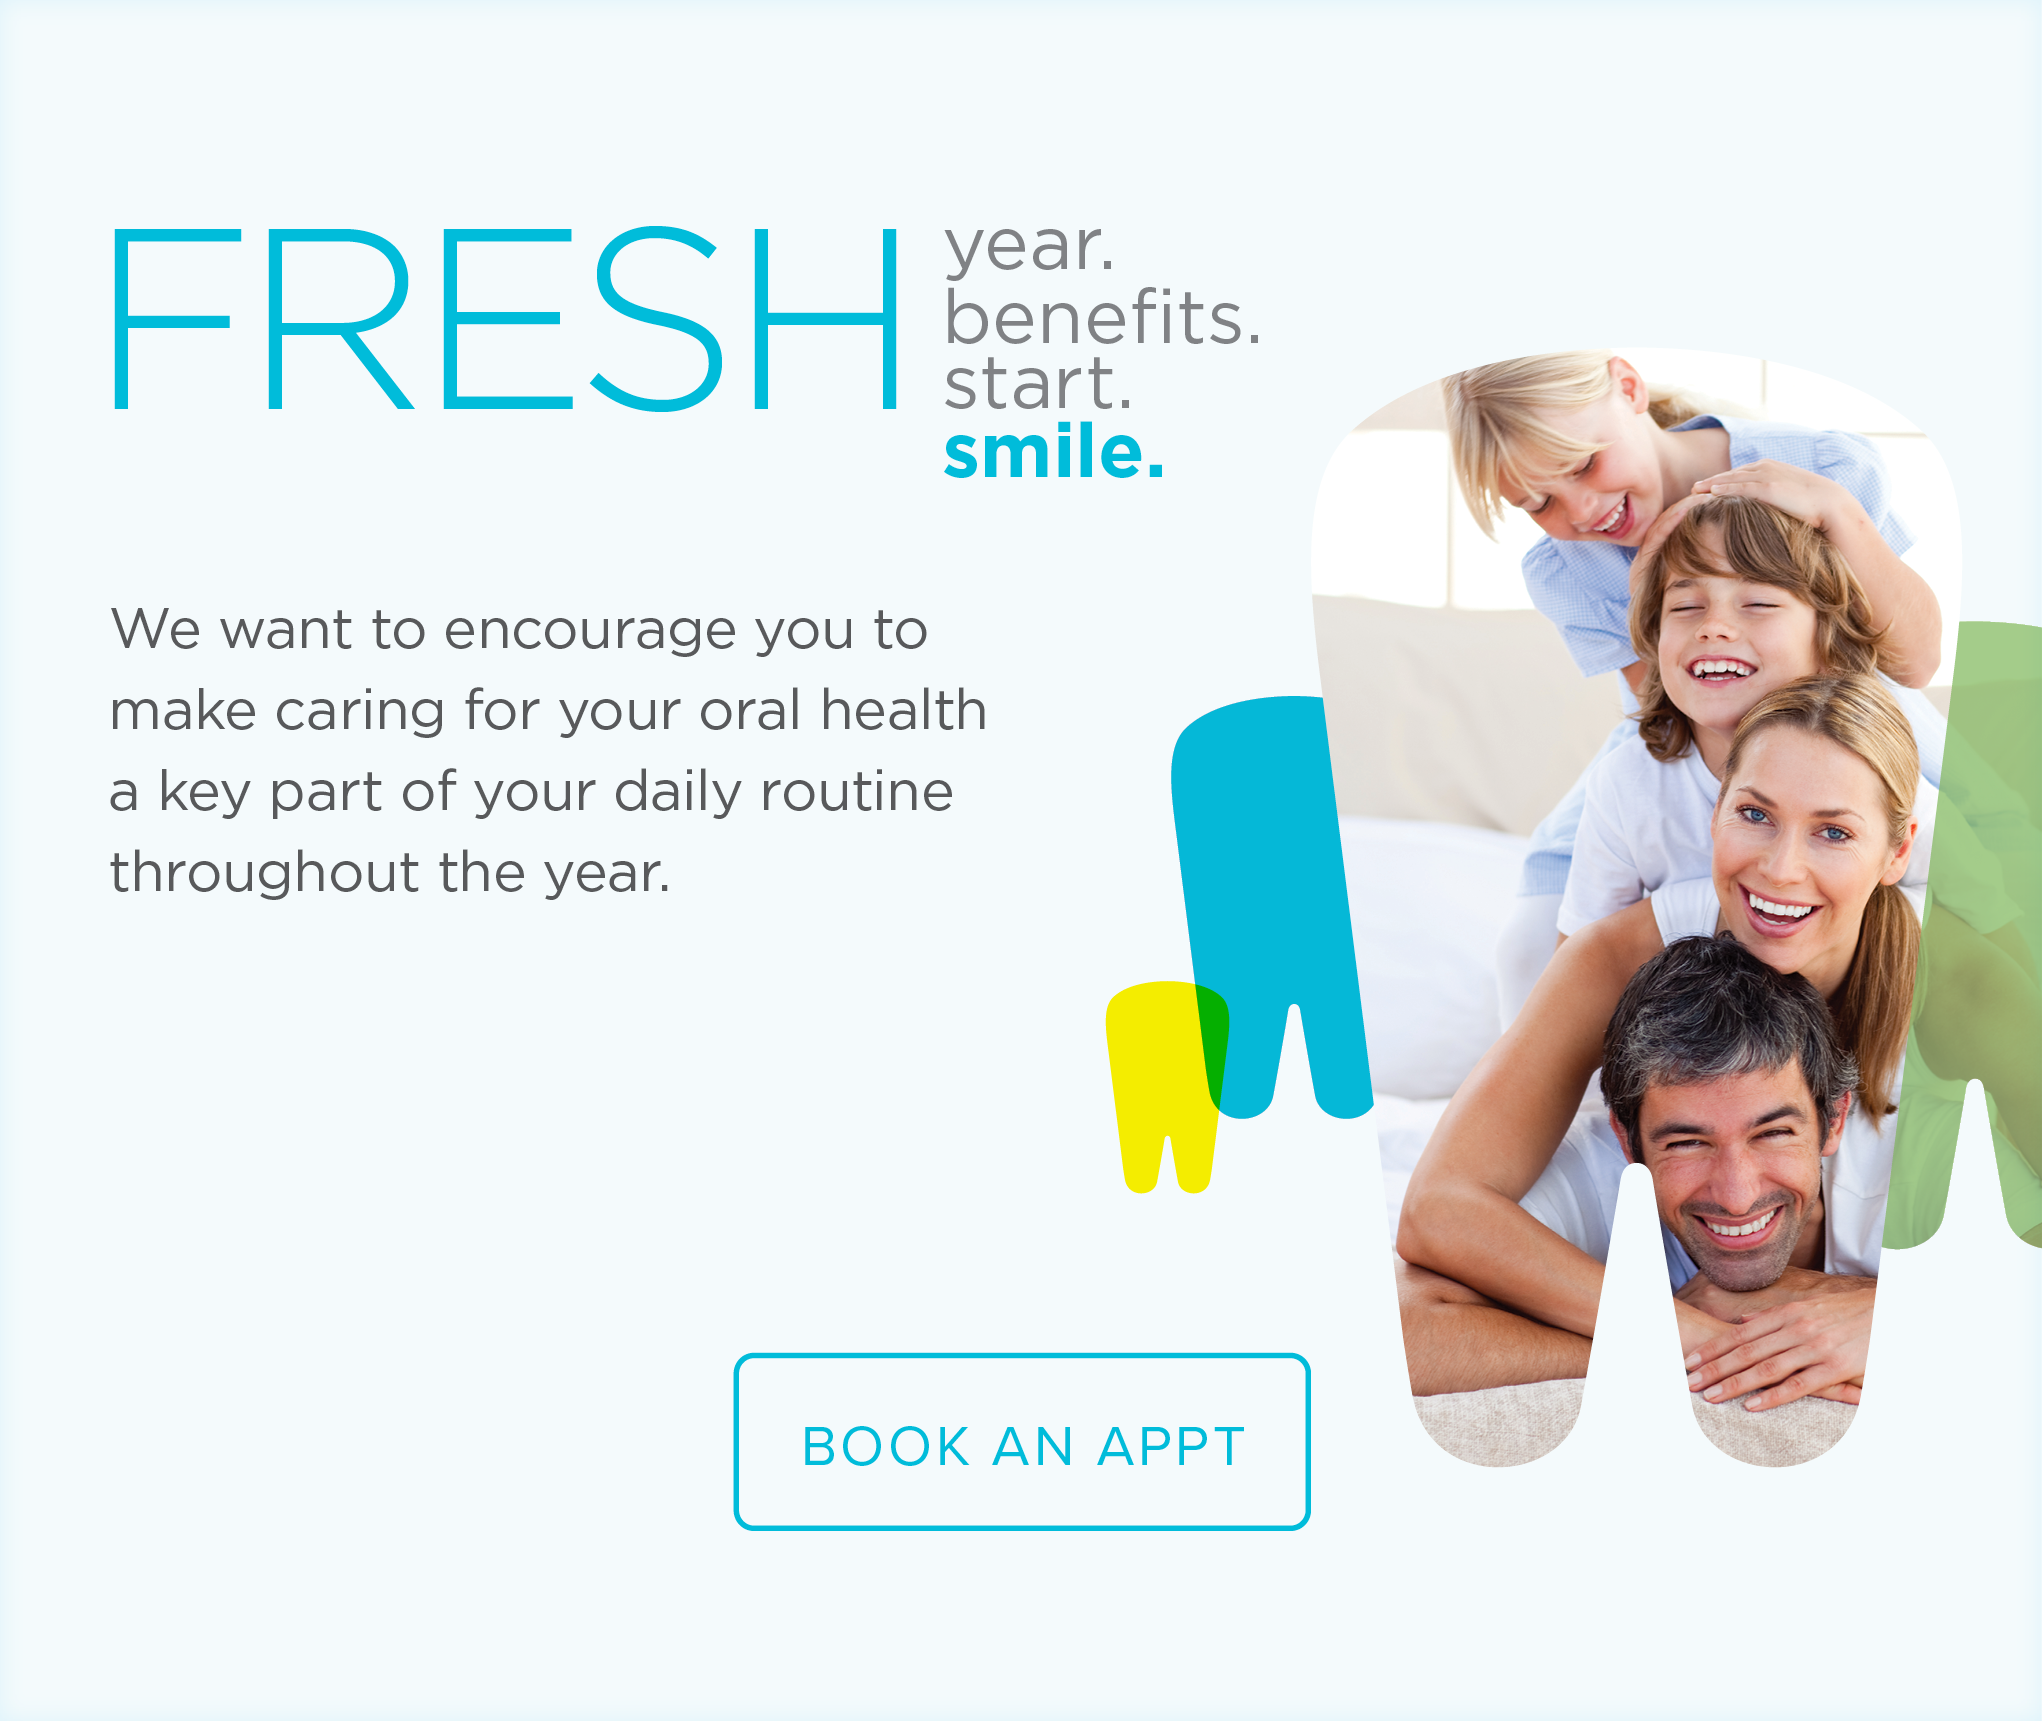 Broomfield Modern Dentistry - Make the Most of Your Benefits